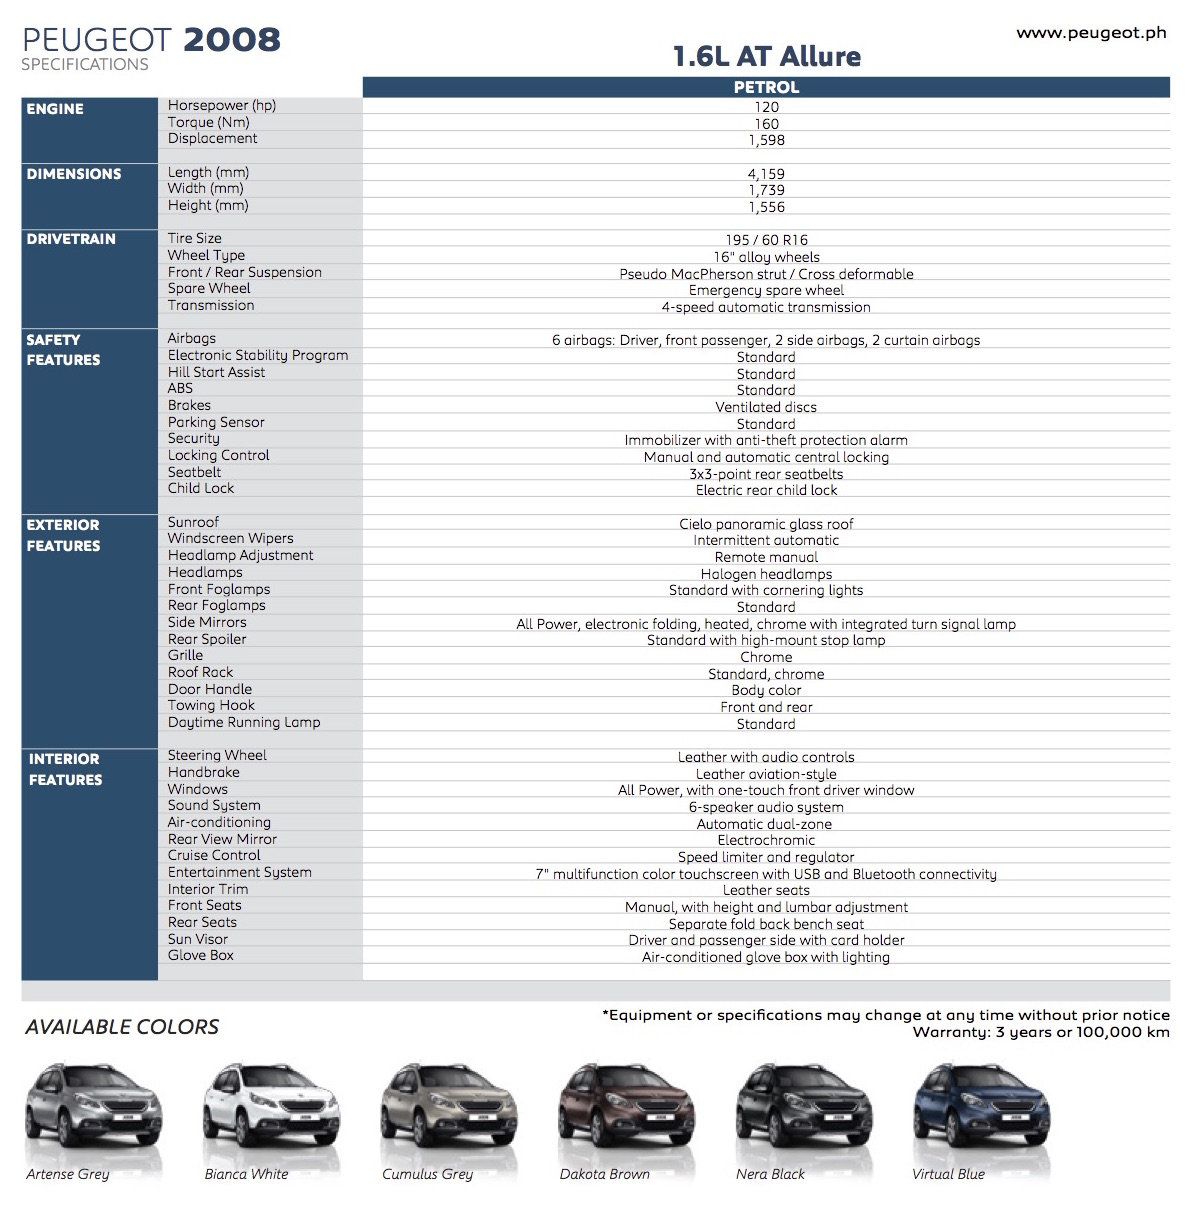 peugeot philippines brings in 2008 crossover w specs philippine car news car reviews. Black Bedroom Furniture Sets. Home Design Ideas